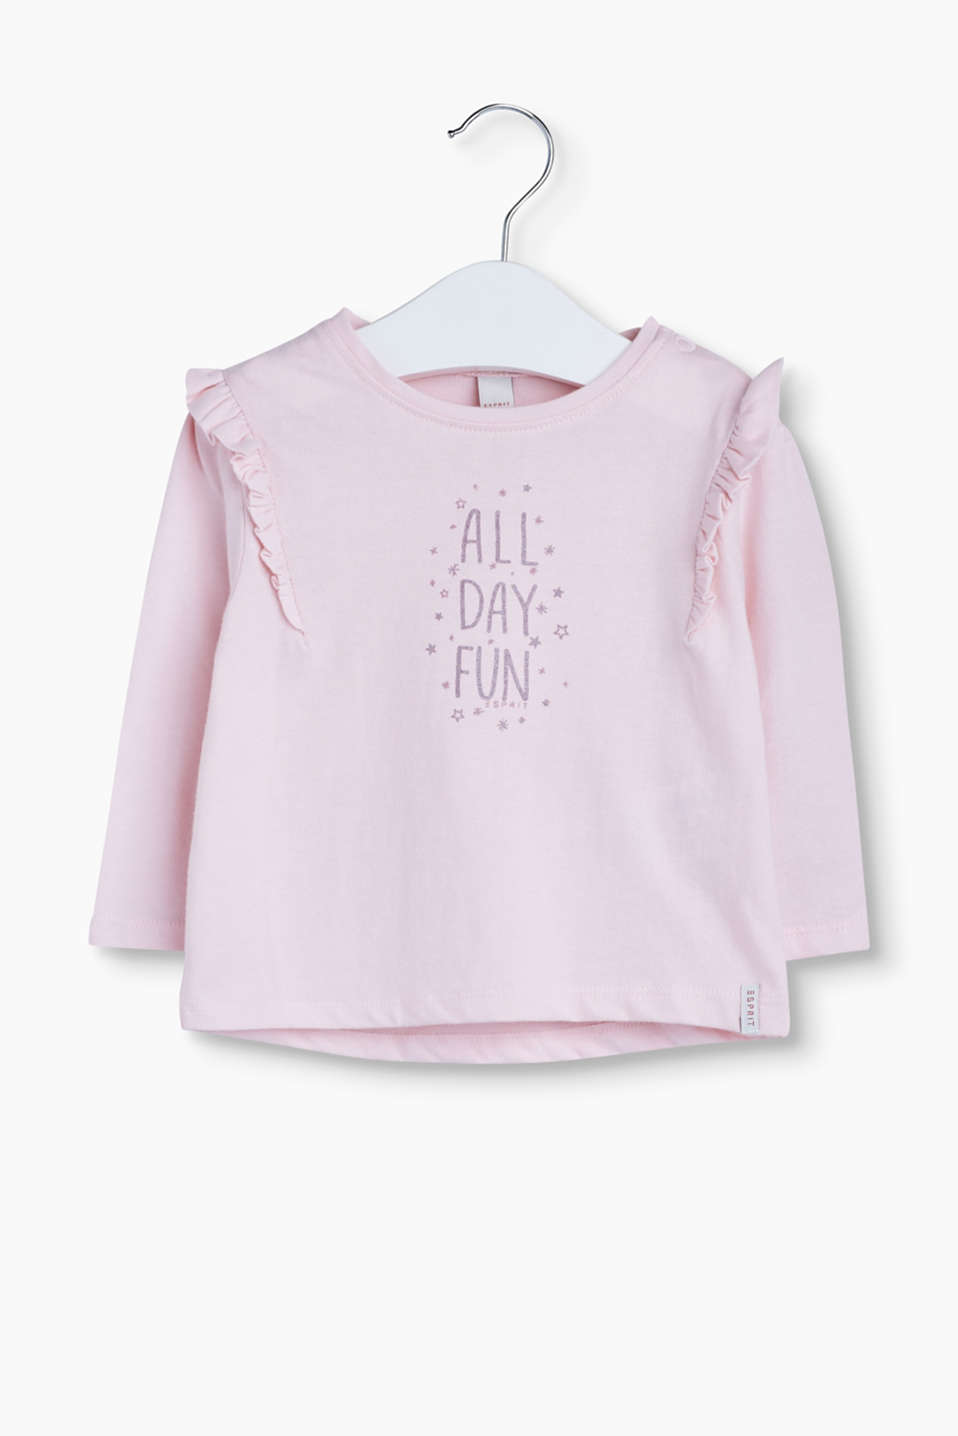 ALL DAY FUN - soft long sleeve top with a cheery statement print and pretty frills.